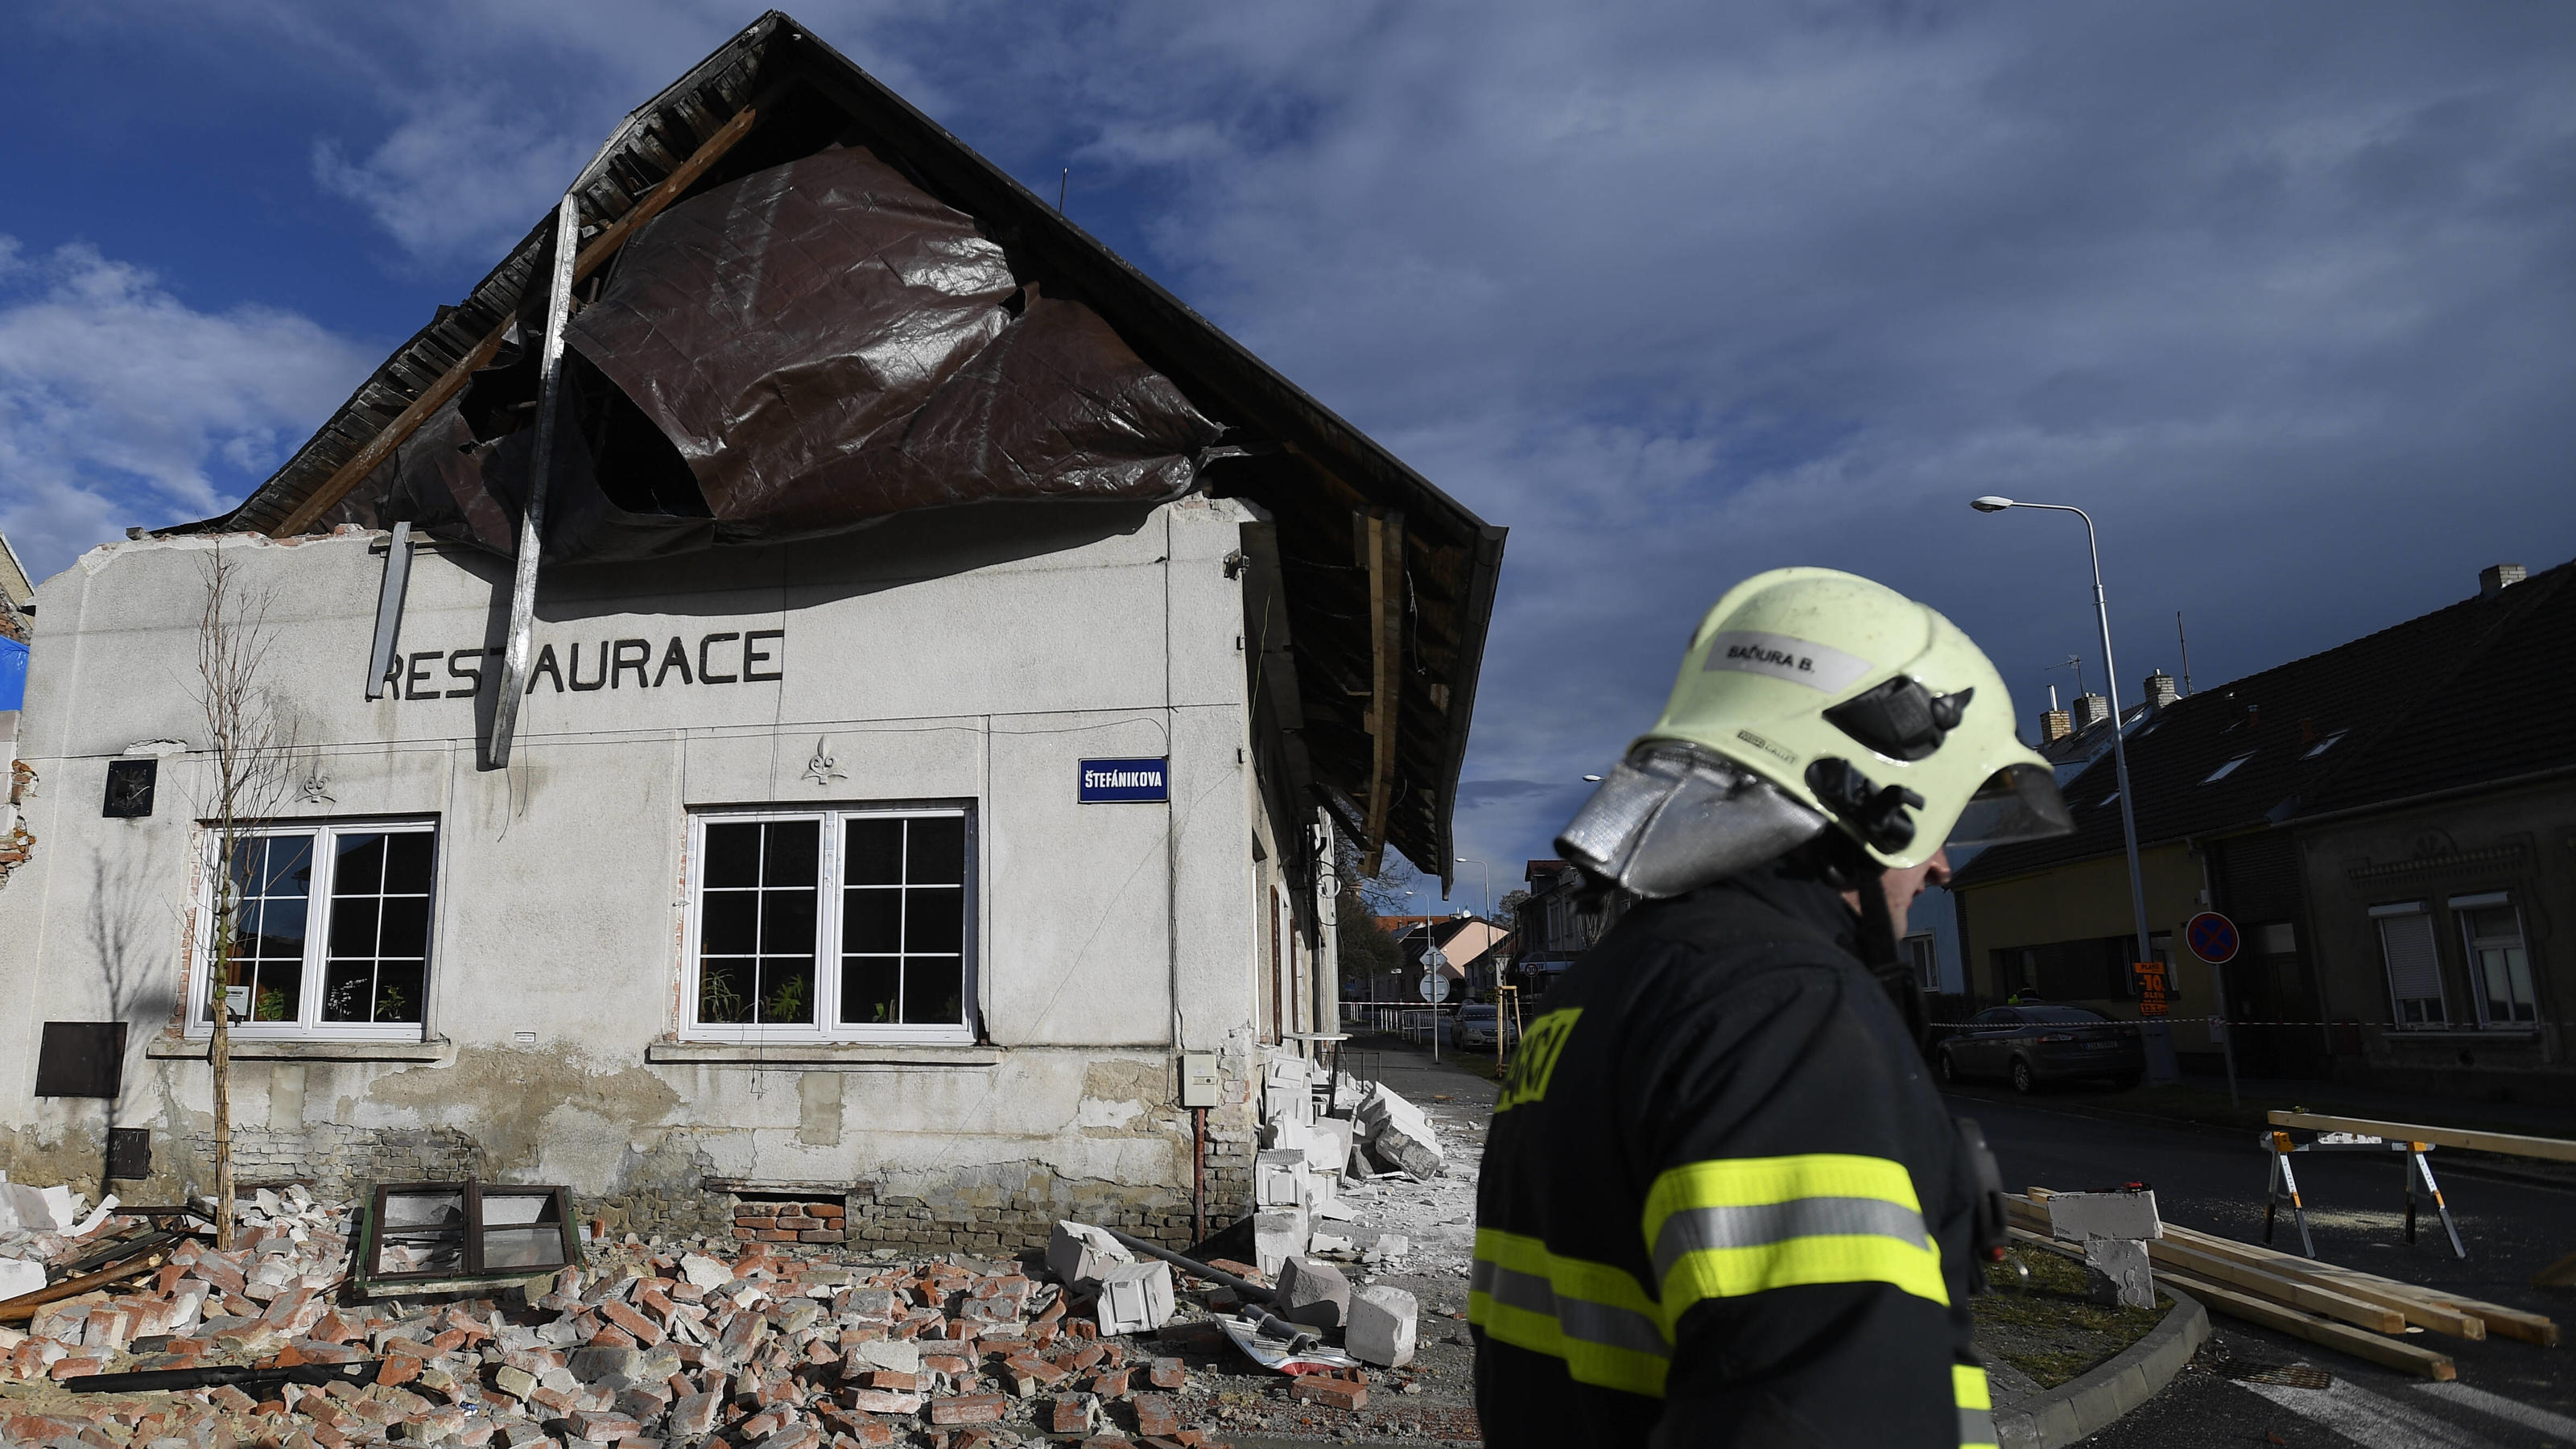 Firefighters prepare support for a shifted roof after storm Ciara Sabine is seen on Monday, February 10, 2020, in Kladno, Czech Republic. CTKxPhoto/OndrejxDeml CTKPhotoP202002100502001 dml